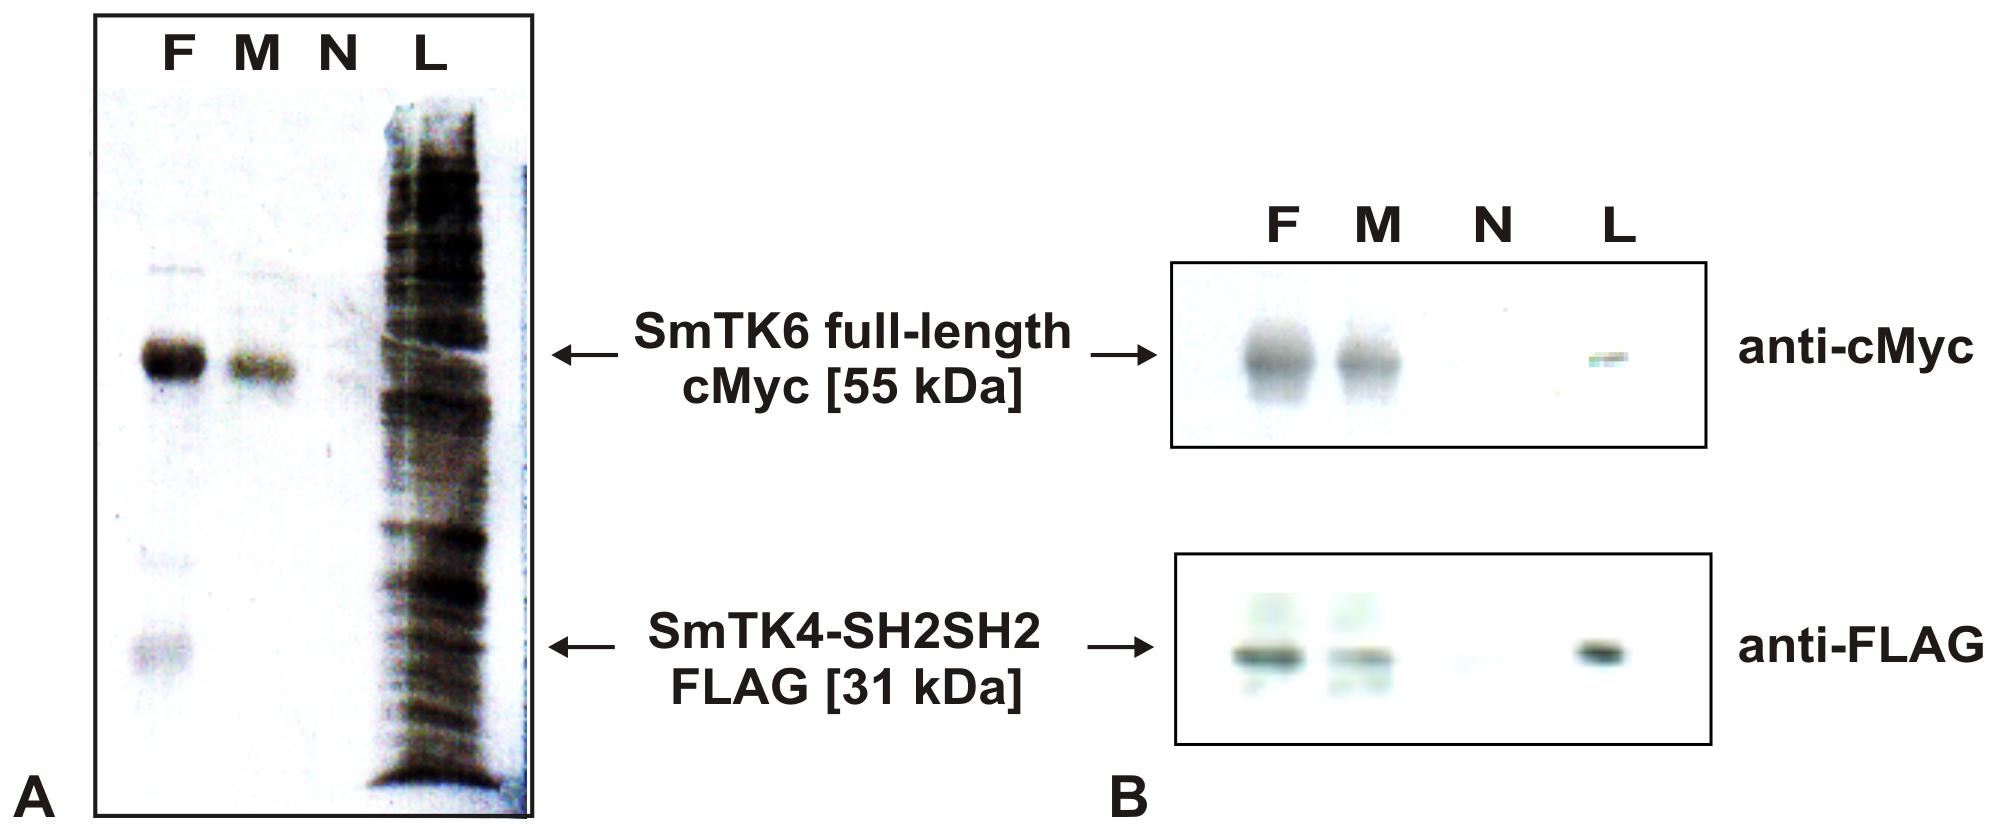 Co-immunoprecipitation of SmTK4 and SmTK6.